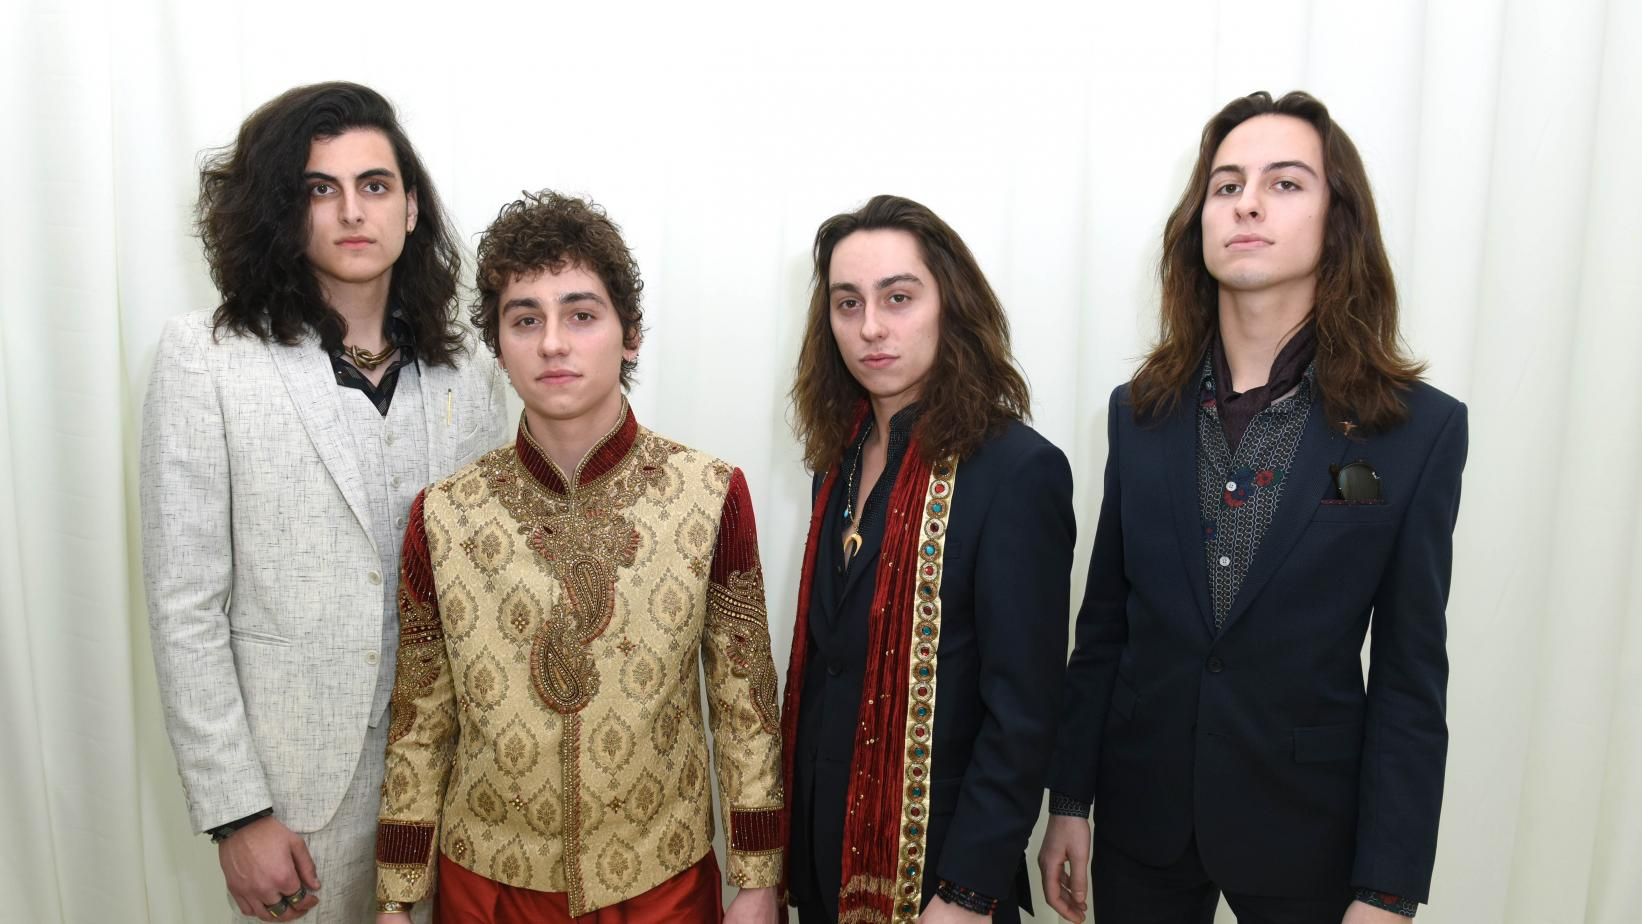 Greta Van Fleet photographed in 2018